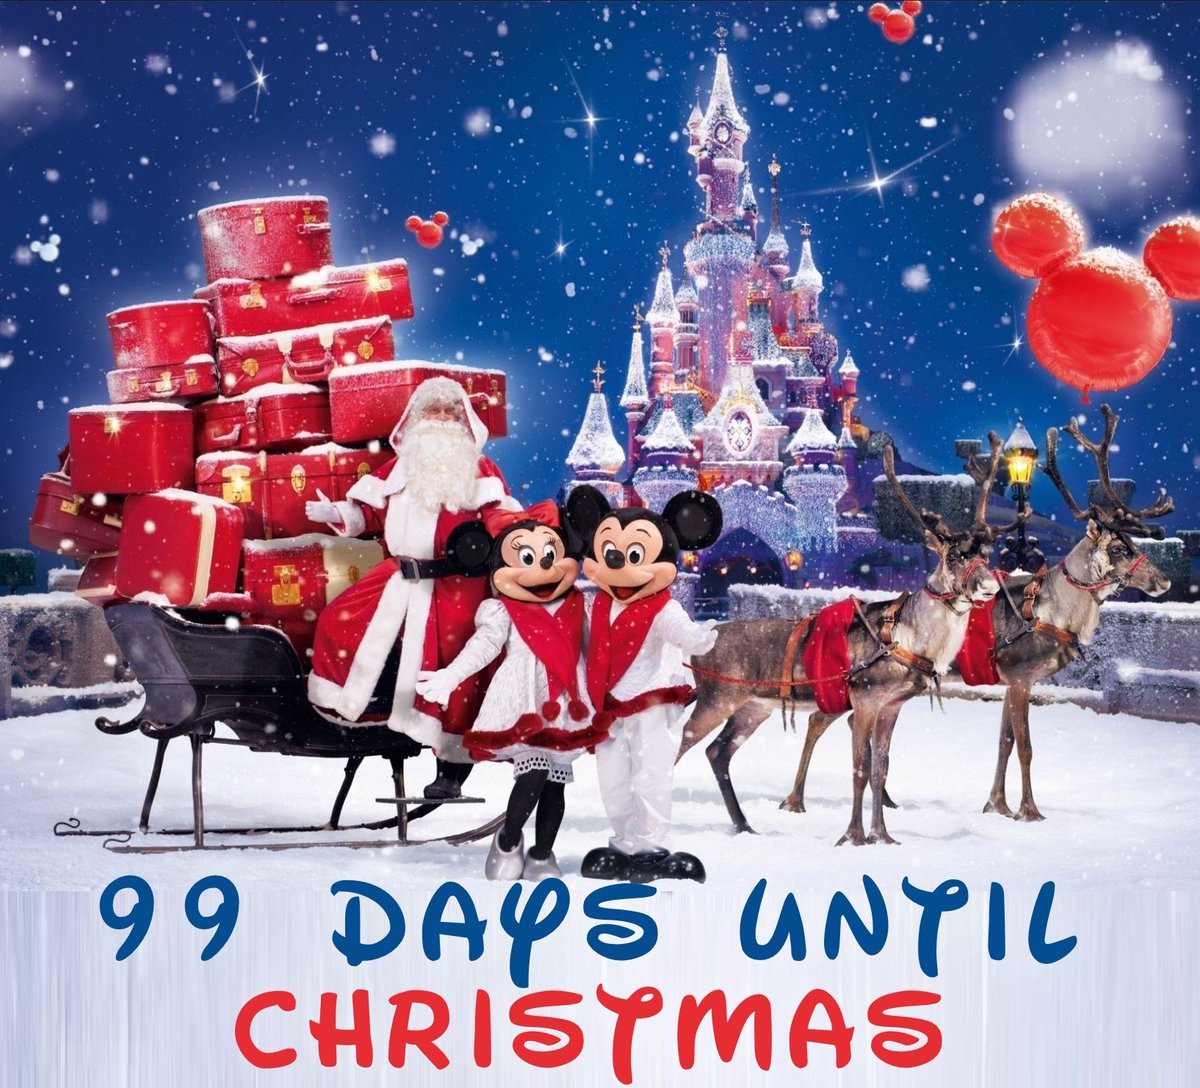 Until Christmas 99 Days Till Christmas.Your Christmas Countdown On Twitter Only 99 More Days